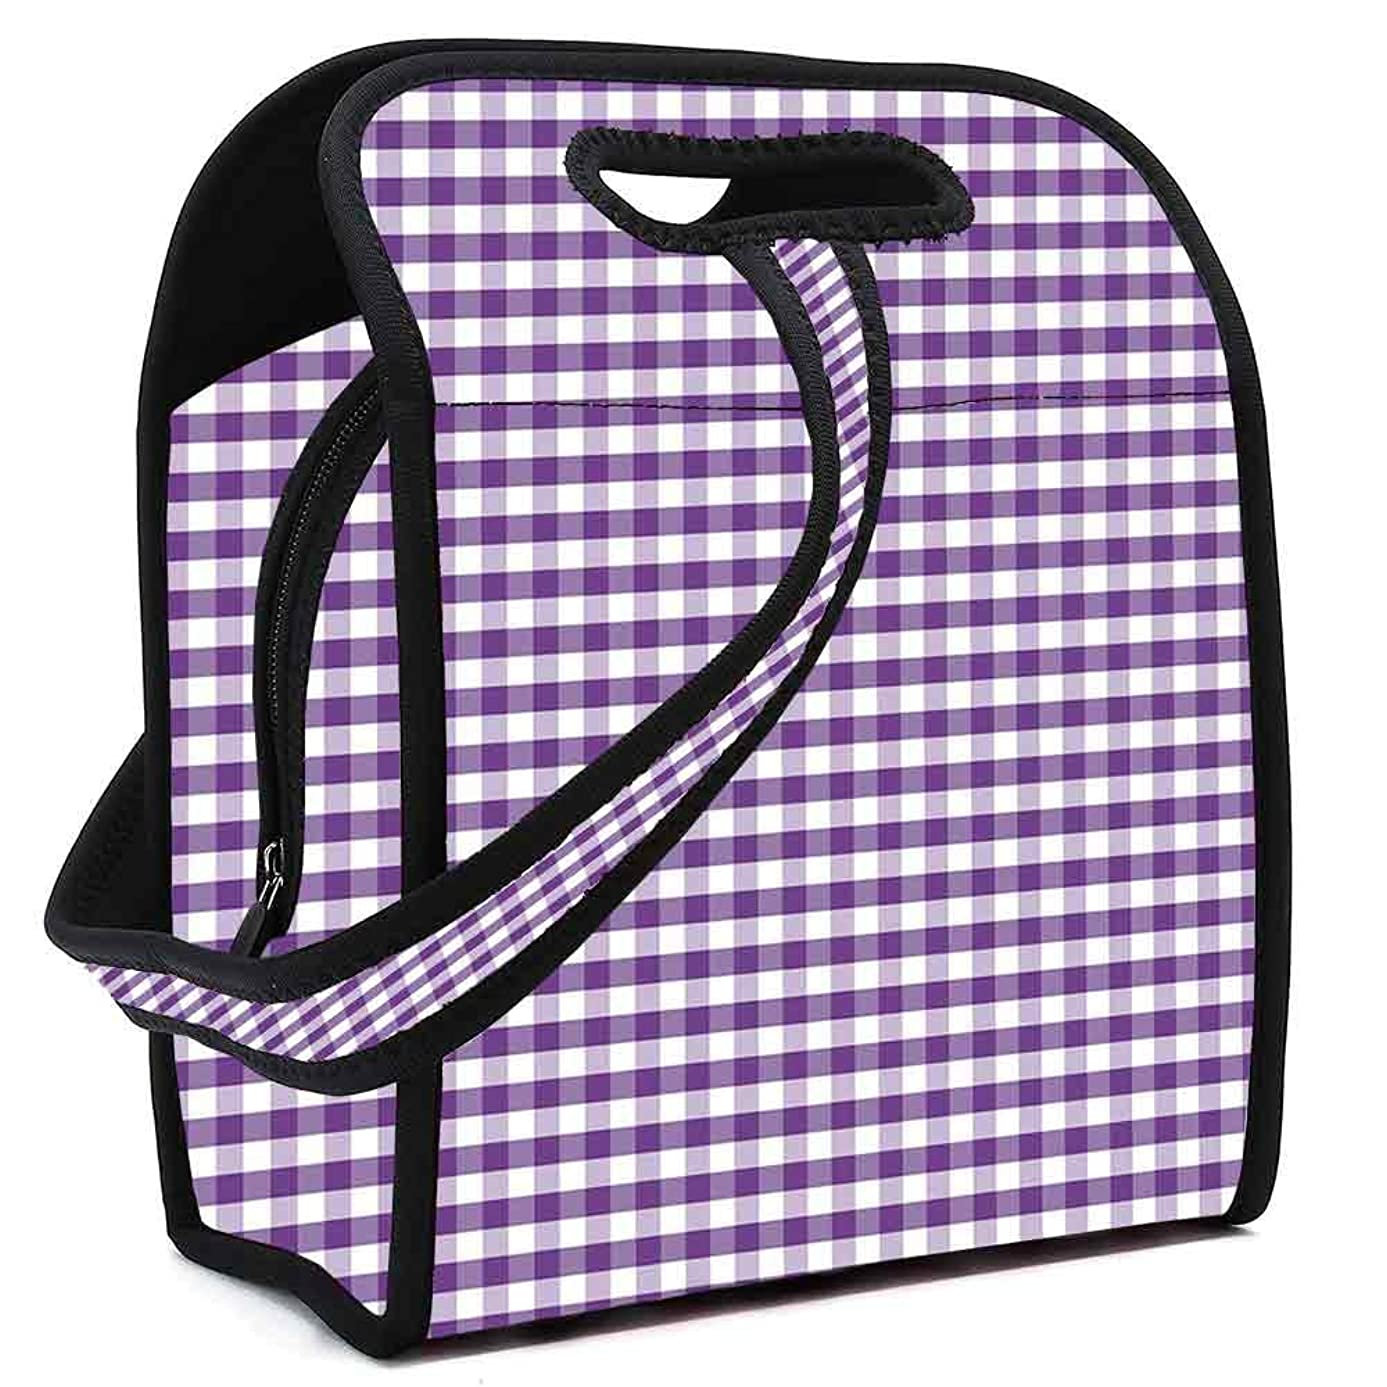 Checkered Waterproof Neoprene Lunch Bag,Purple and White Colored Gingham Checks Rows Picnic Theme Vintage Style Print Decorative for Commercial Takeaway Barbecue,Square(8.5''L x 5.5''W x 11''H)